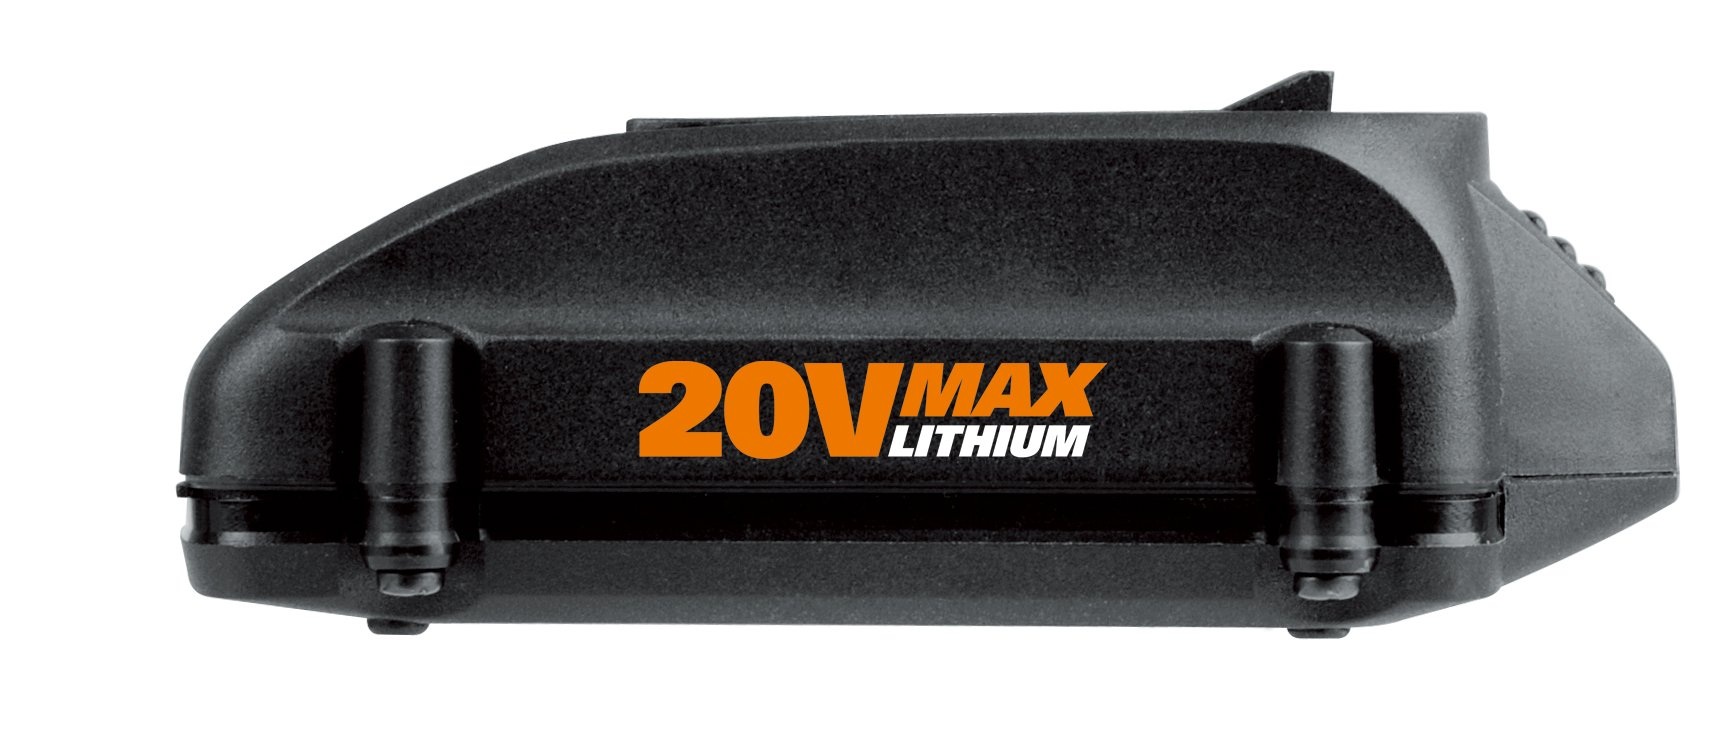 Worx WA3520 20-Volt 1.5 Amp Hour MaxLithium Battery – PowerShare Battery Platform and Replacement Battery